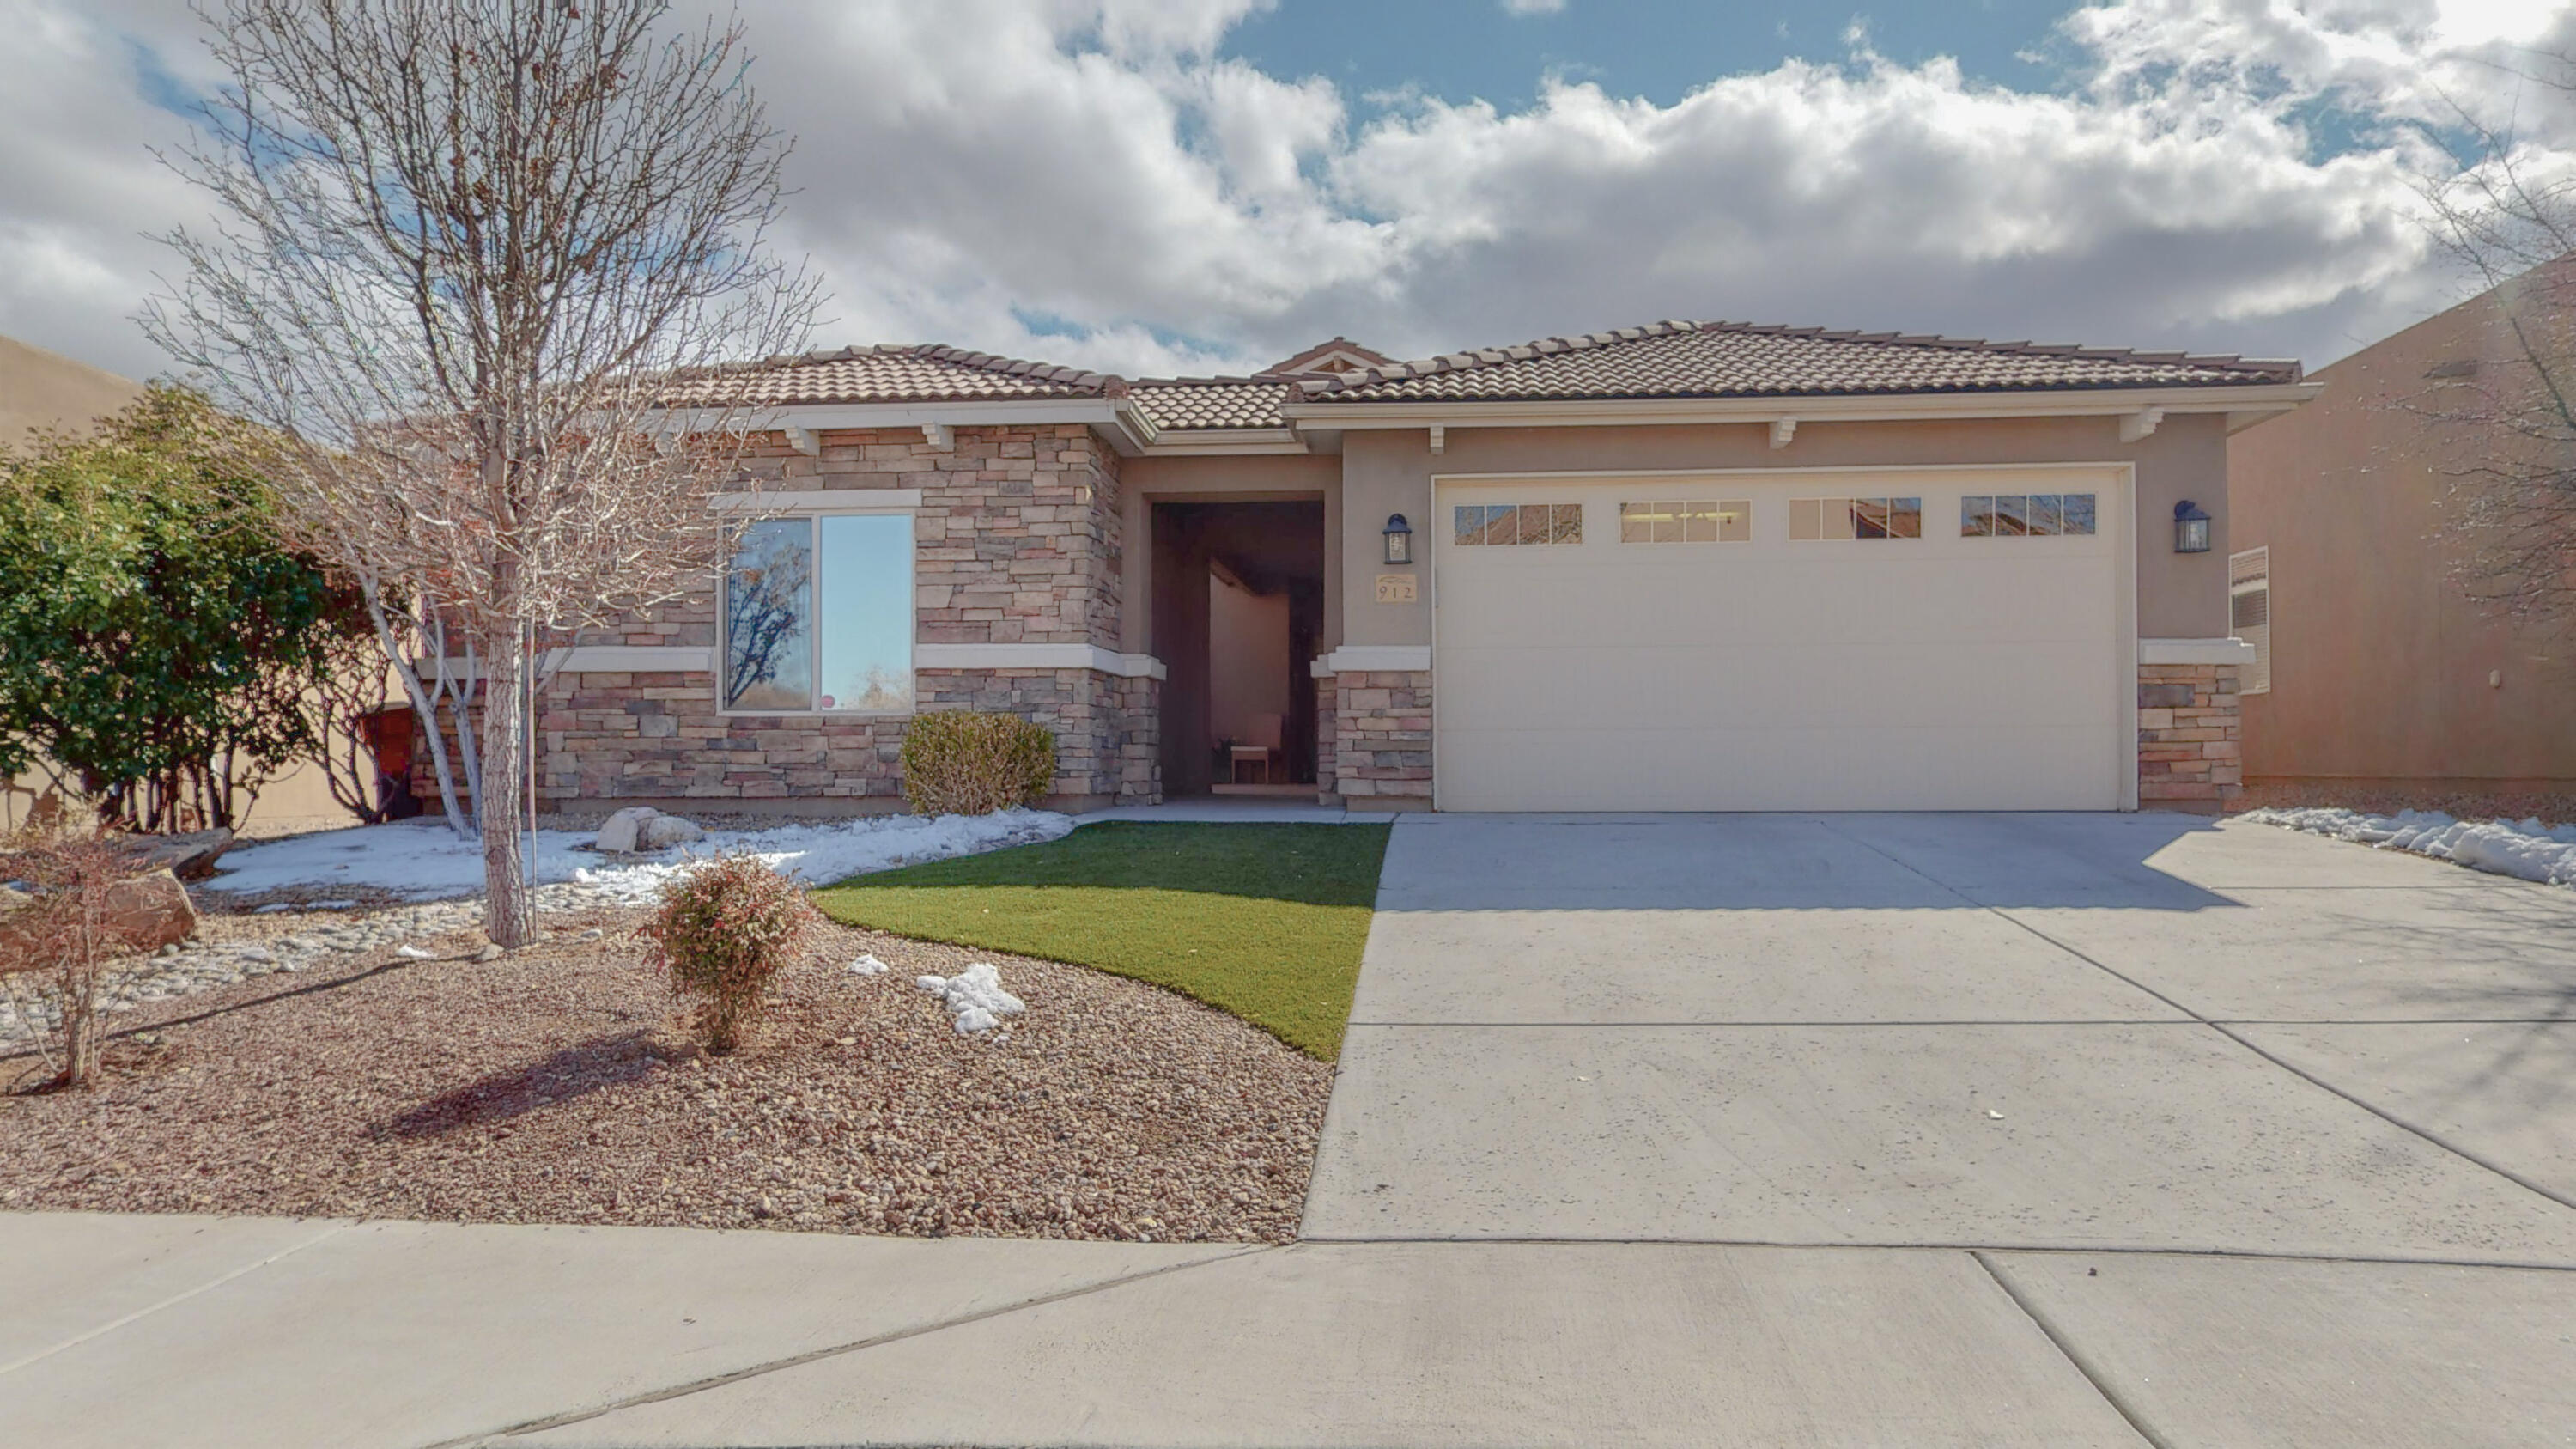 Undeniably this home has the most magnificent views of the Sandia Mountains in this upscale community. Enjoy the peace and tranquility of the spectacular views from your private patio and custom flagstone fire pit. Luxury awaits you inside this elegant home with upgraded flooring and open floor plan. Bright open kitchen has double ovens, granite counters and  island that overlooks the cozy family room.  Delightful custom touches throughout this former model home. Not to mention the casita with endless possibilities! Designers features throughout, includes pull outs, niches and skylights. Welcoming adult community with pools, jacuzzi, fitness center and great location with access to the Bosque. Your buying not just a home but a lifestyle!!